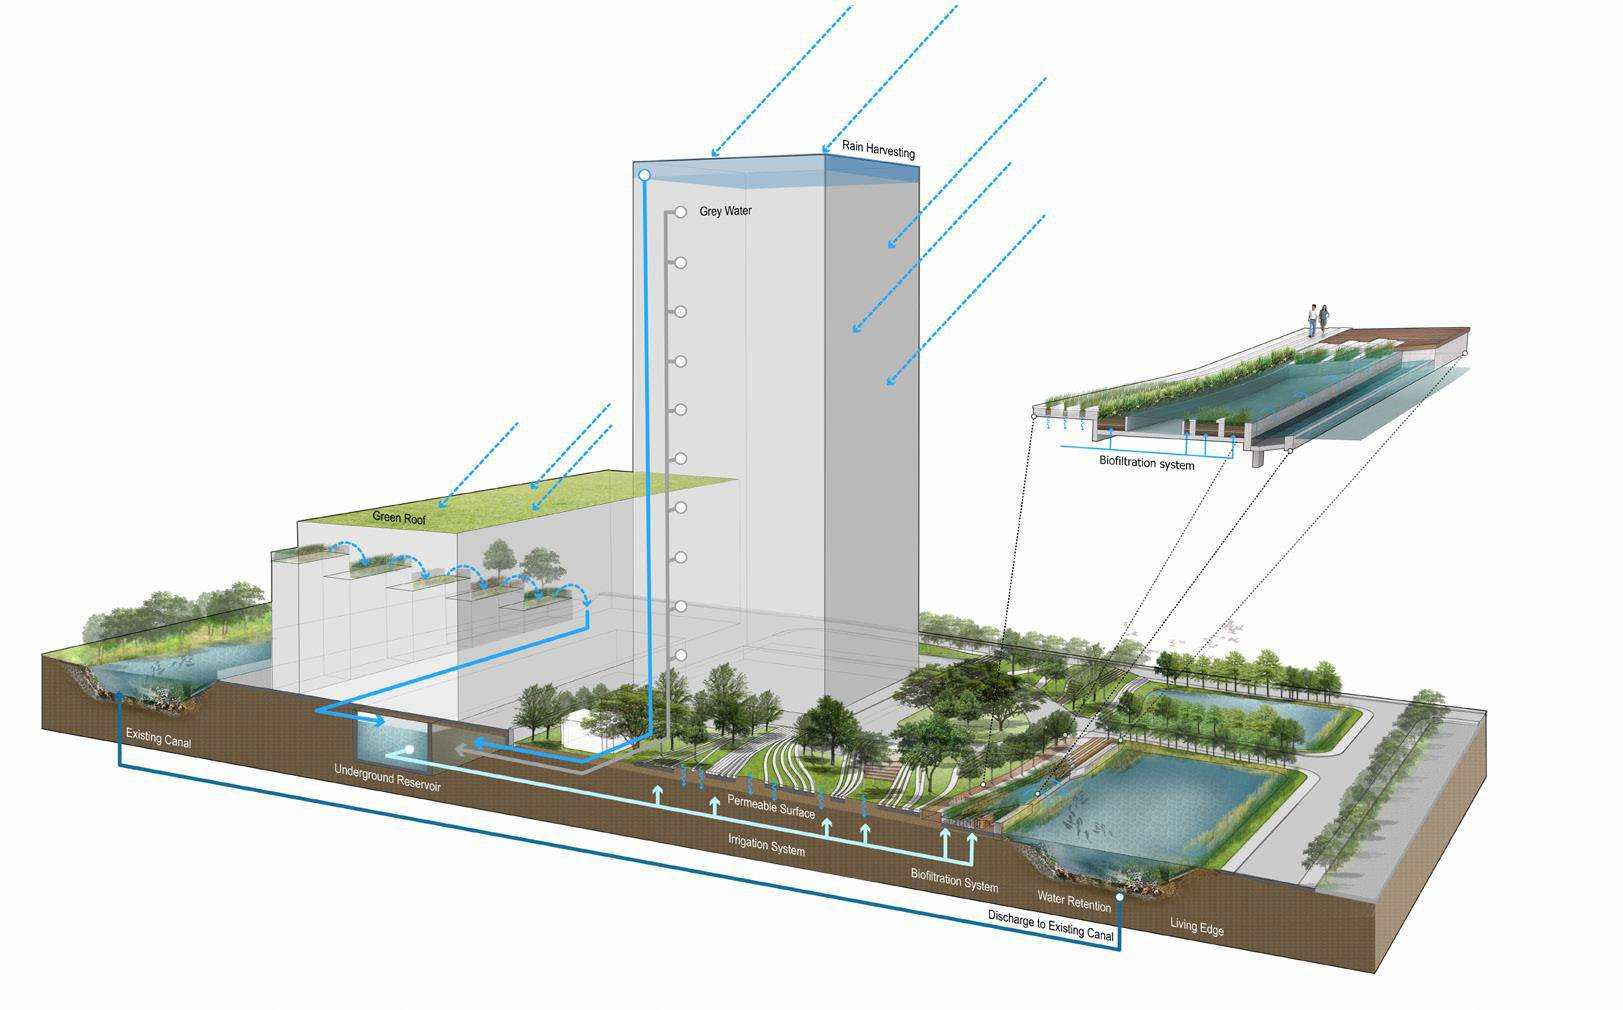 The diagram shows the additional function of the design as a performative landscape that uses an integrative water management system of permeable surfaces and grey & rain harvest catchments, which helped the overall project achieve LEED Platinum rating. Image courtesy of Landscape Architects of Bangkok